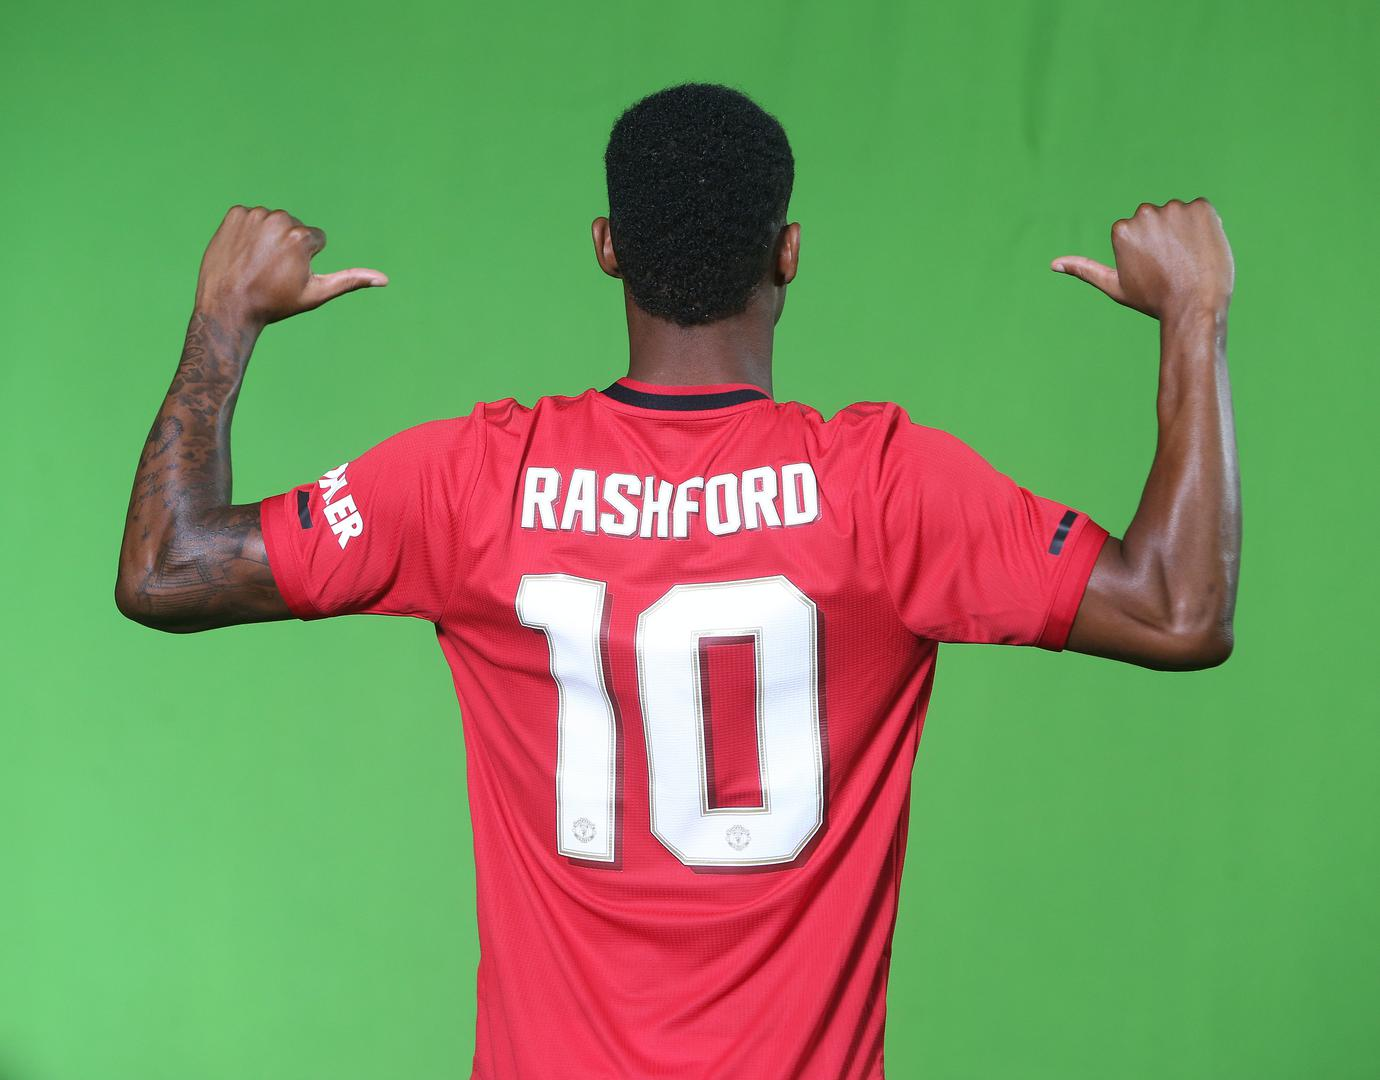 Marcus Rashford points to his name and shirt number.